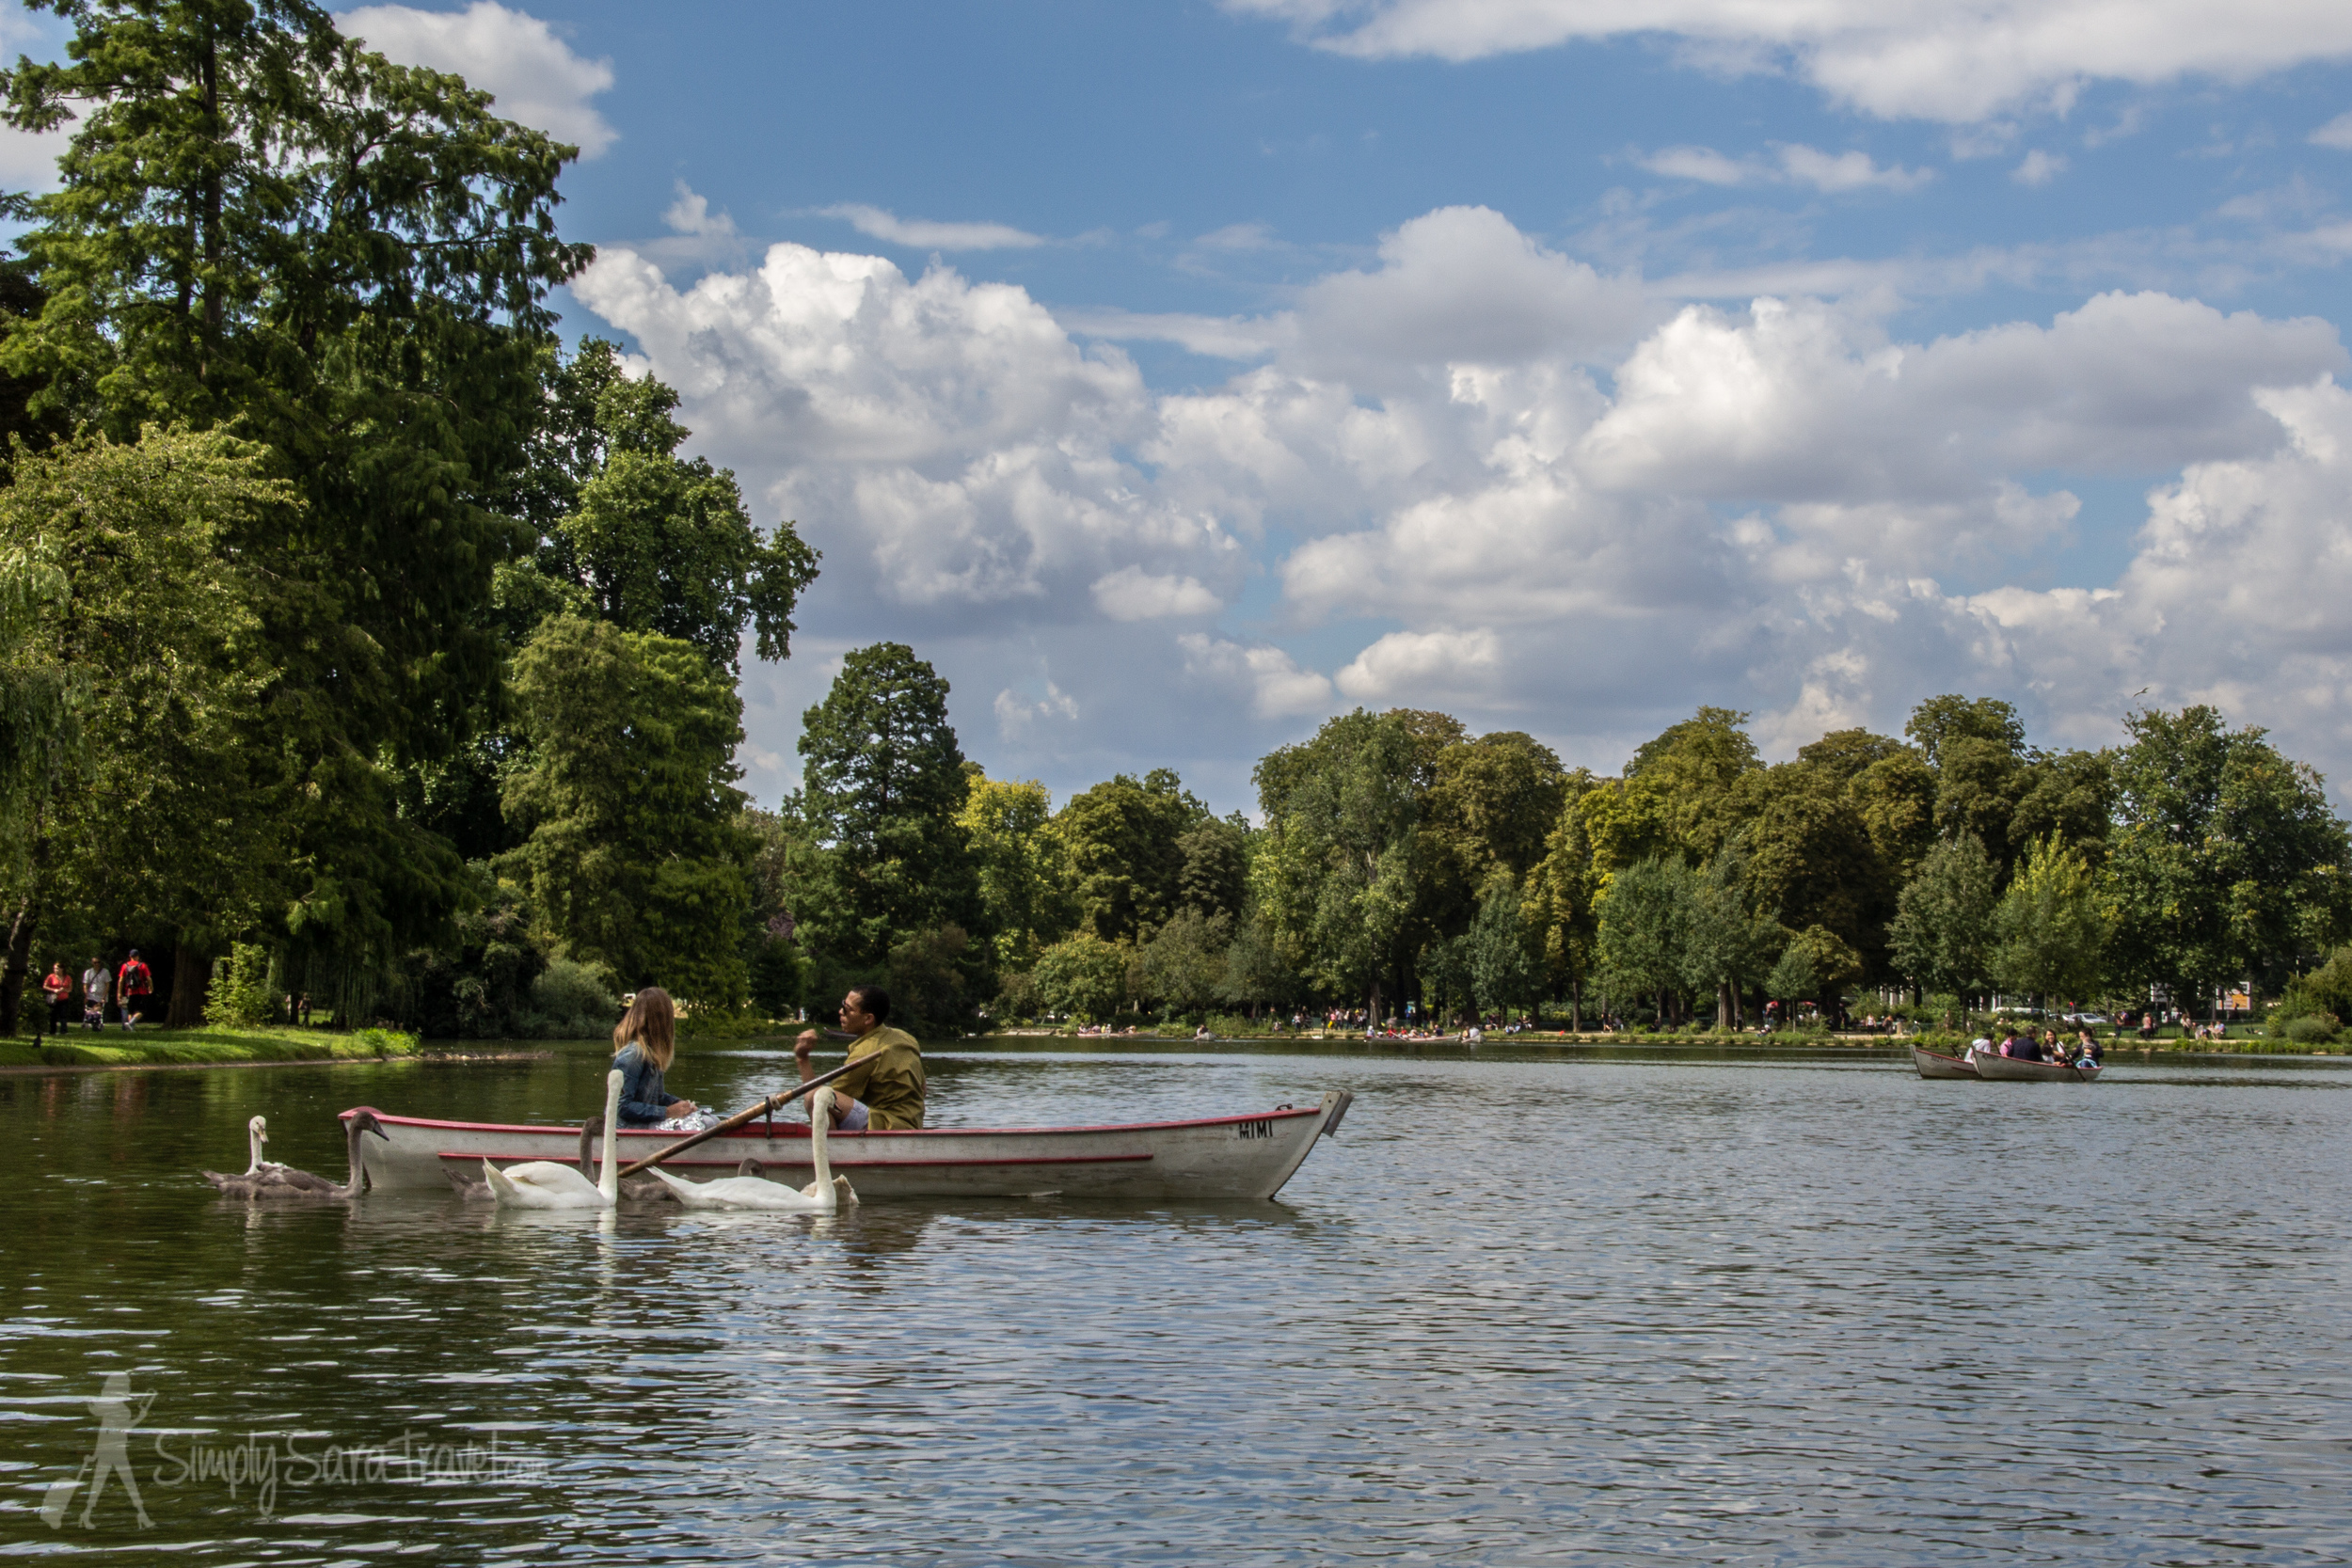 Boat and Swans on Lac Daumesnil, Paris